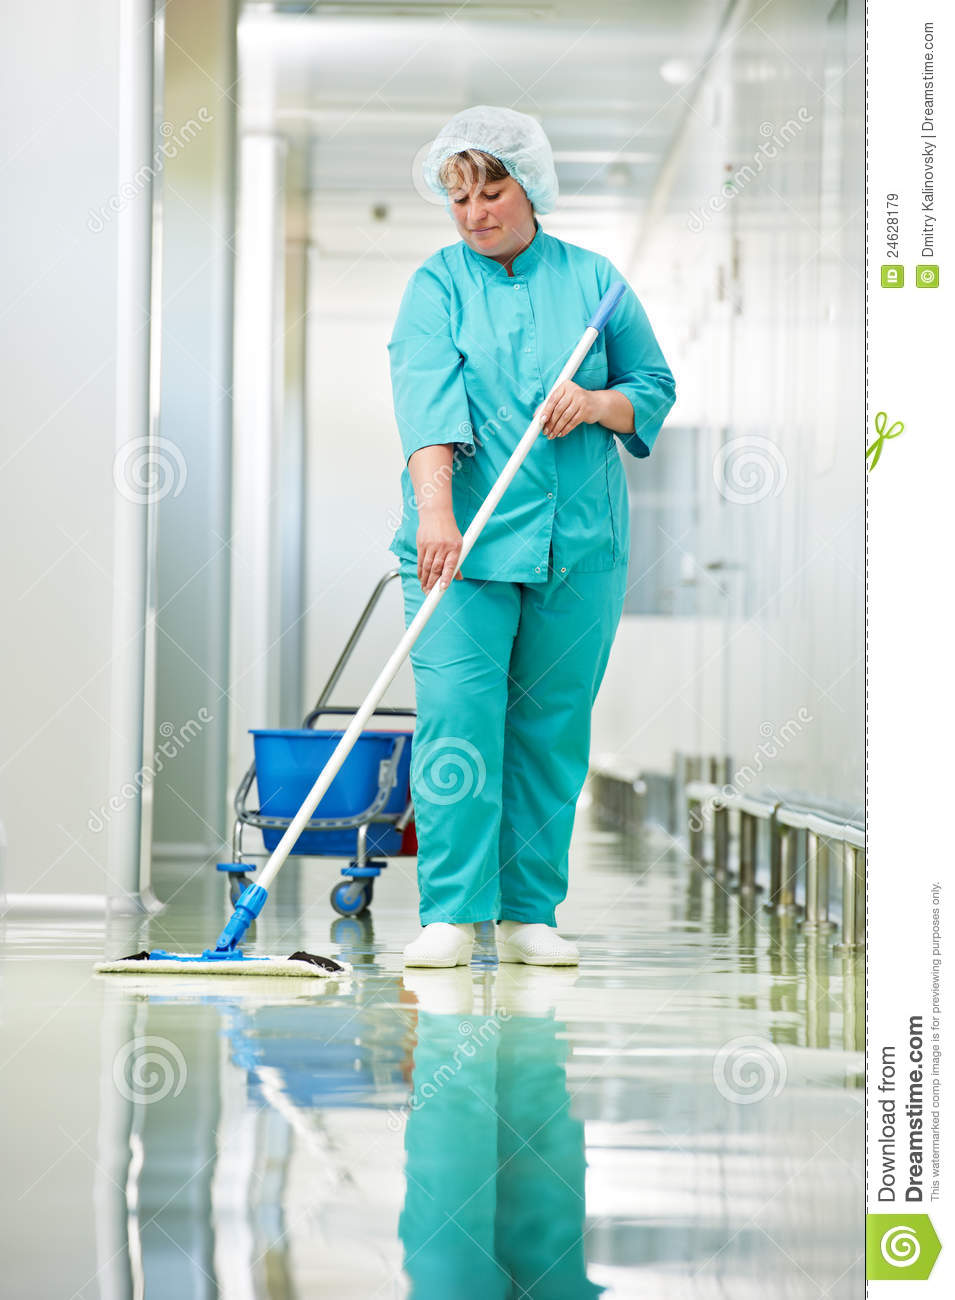 Woman Cleaning Hospital Hall Stock Image